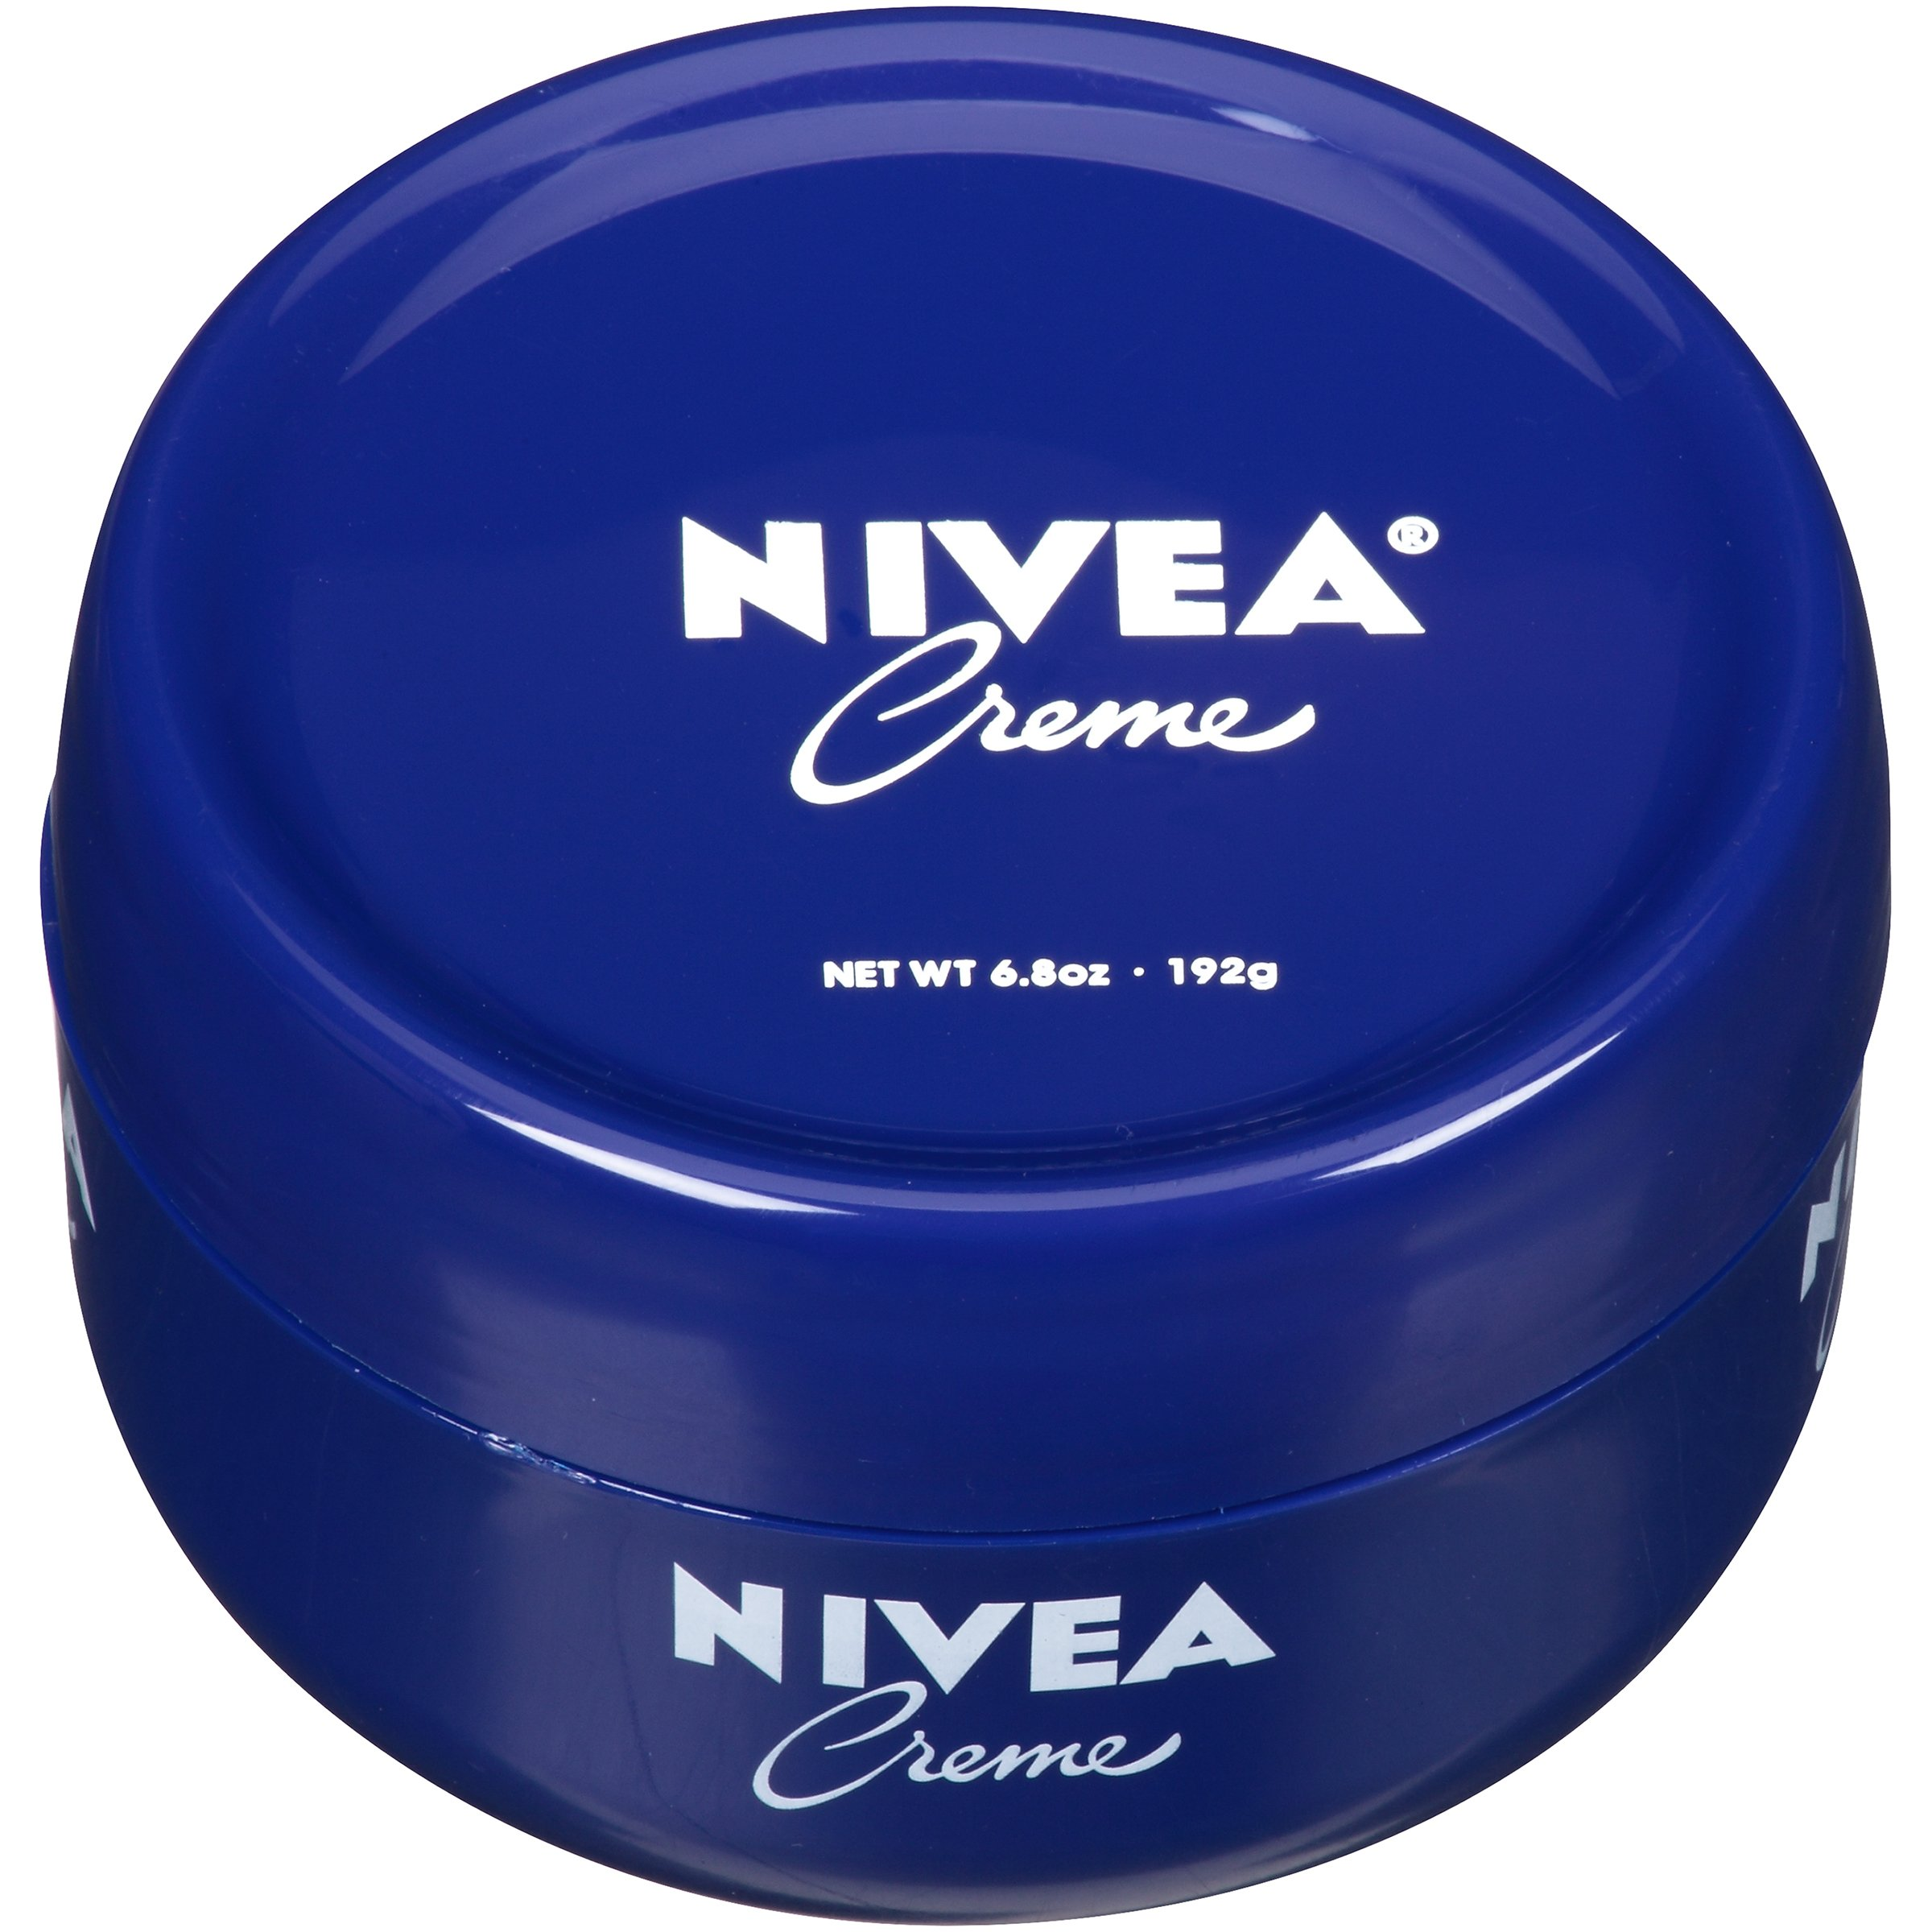 NIVEA Crème - Unisex All Purpose Moisturizing Cream for Body, Face & Hand Care - 6.8 oz. Jar (Pack of 3) by Nivea